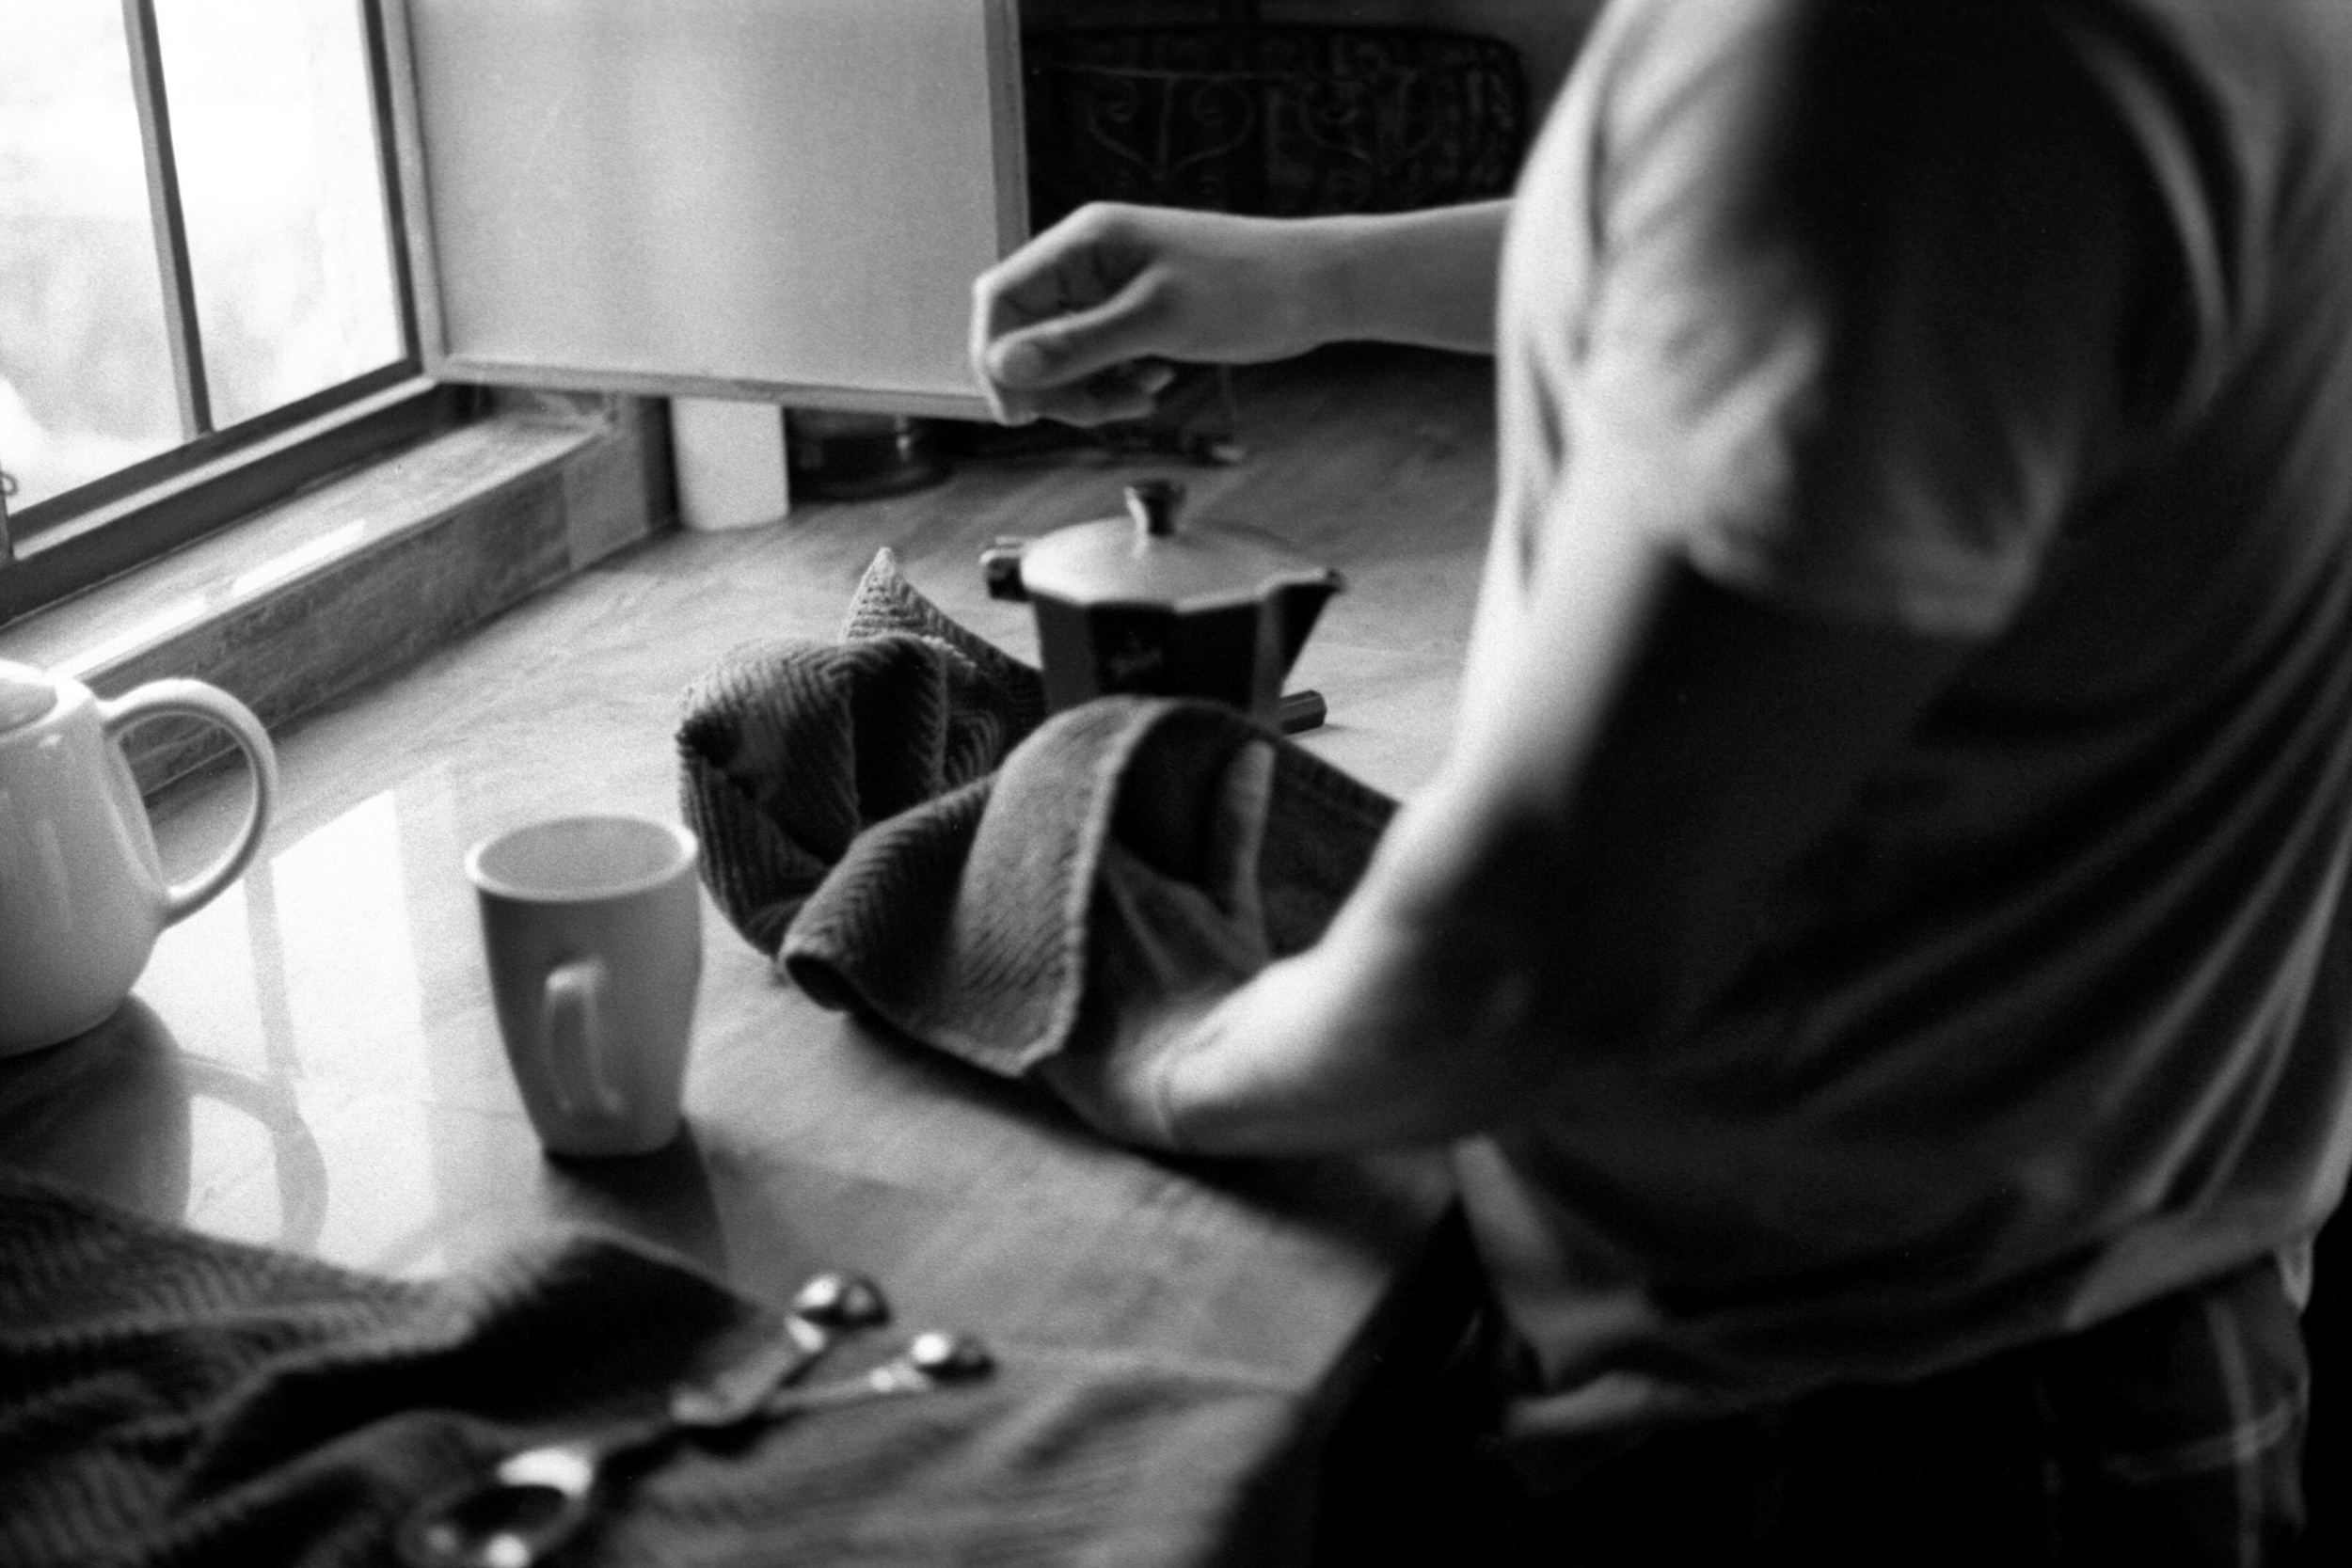 Moments like these.  Leica M6 + Tri-X 400, developed and scanned at home.